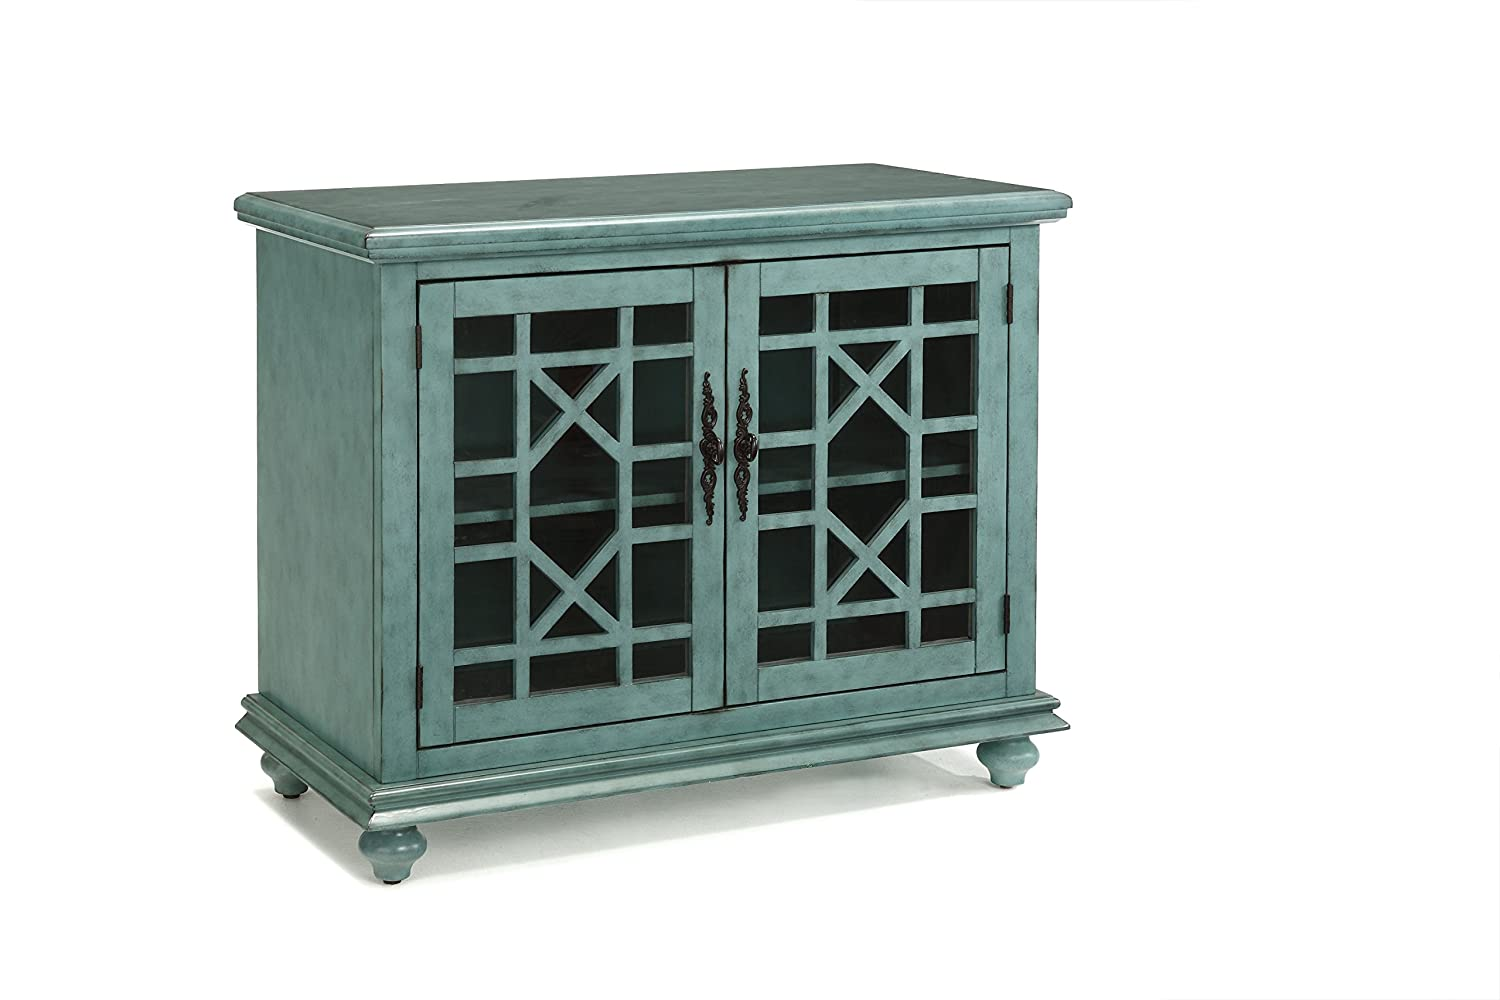 Martin Svensson Home Accent Cabinet 38 W x 32 H Teal